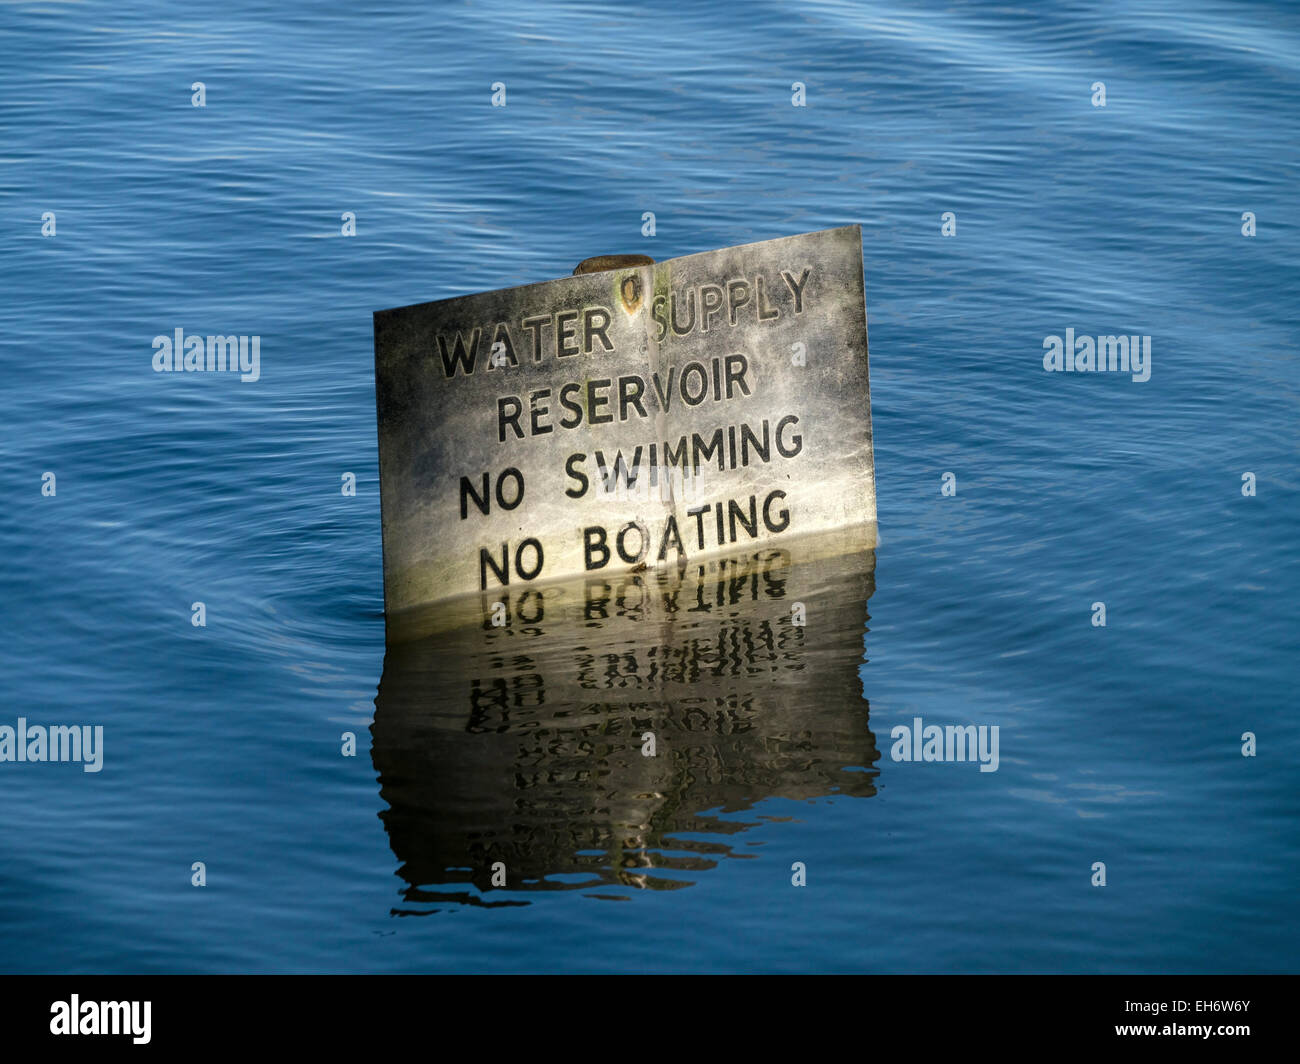 Partially submerged 'No swimming, No boating, Water supply Reservoir' sign, Staunton Harold Reservoir, Ashby - Stock Image